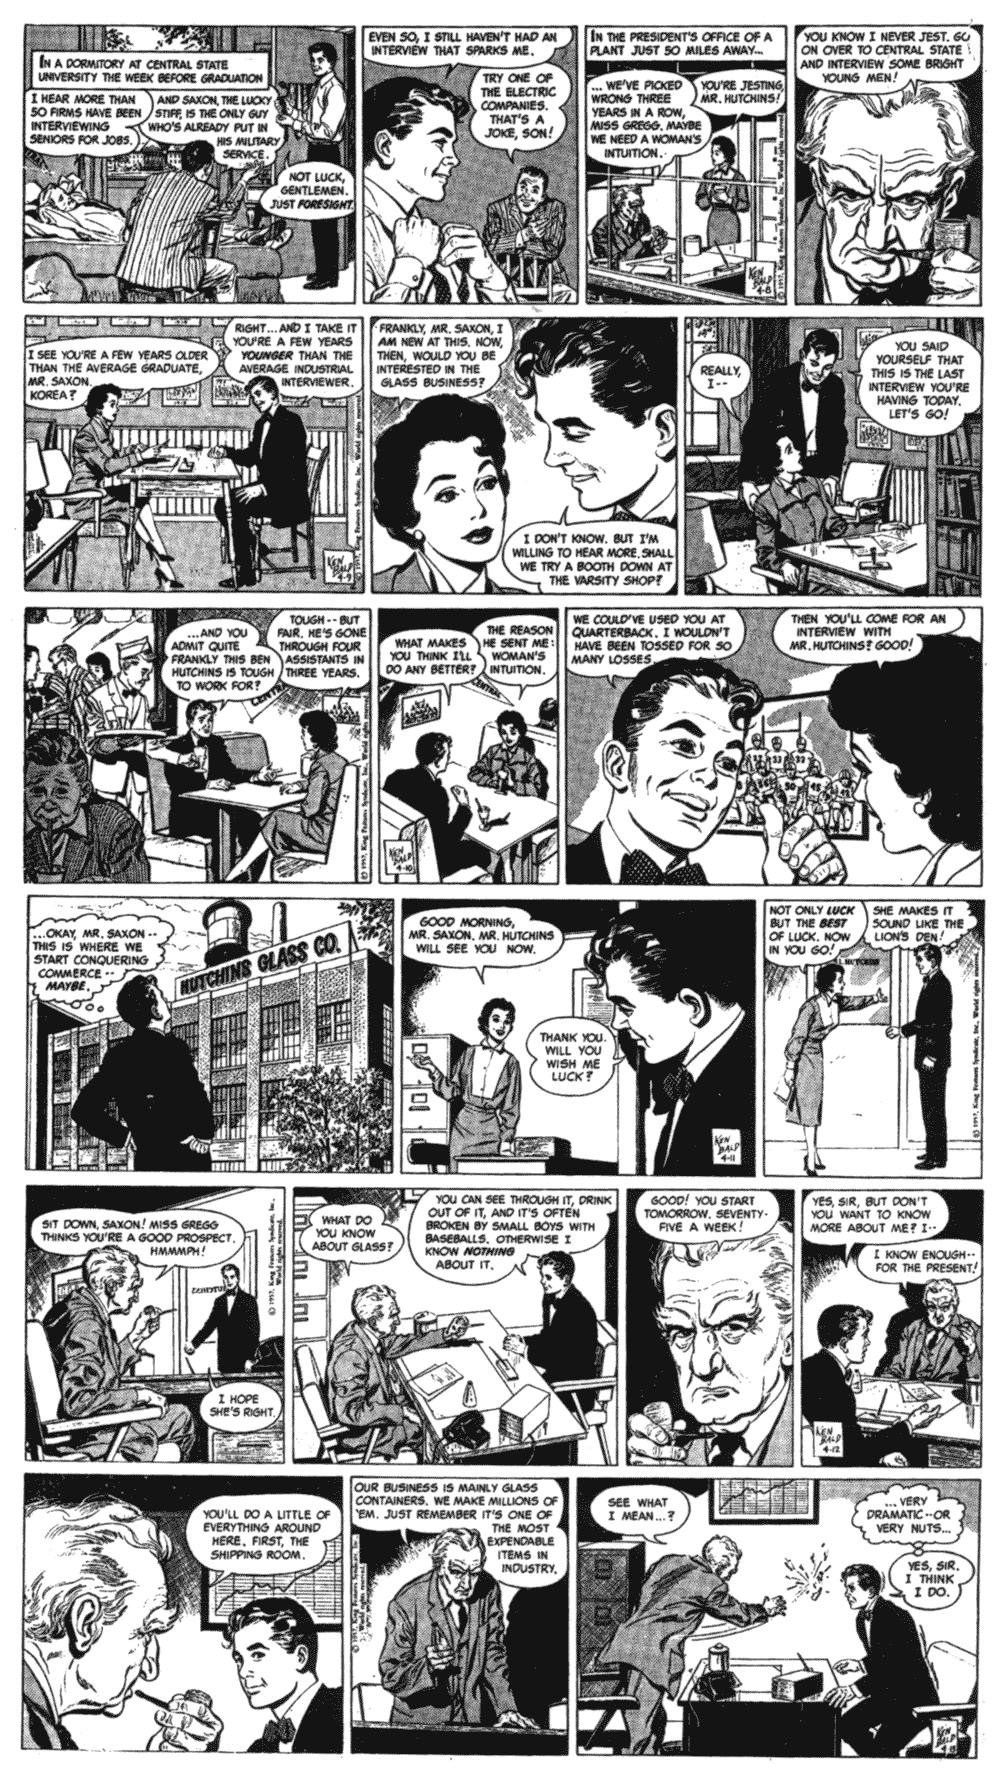 The first week of Judd Saxon strips, with art from Ken Bald.